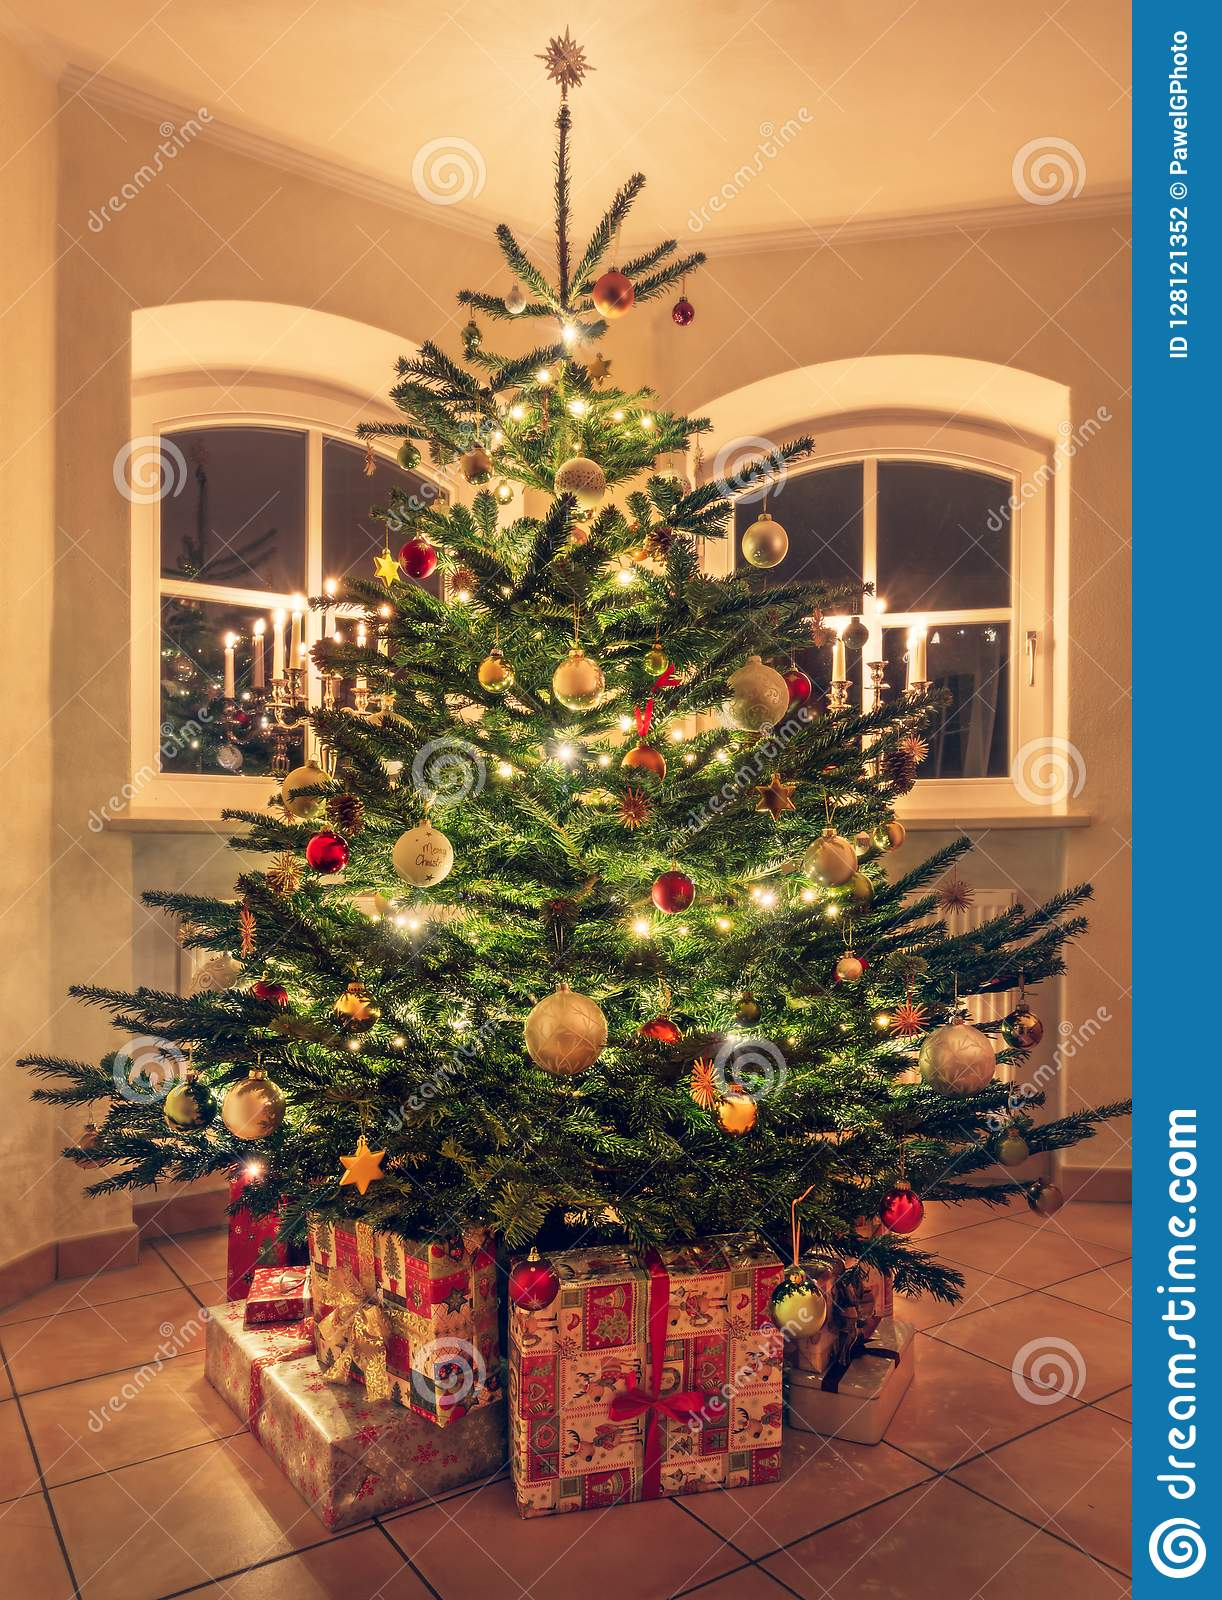 Festive Christmas Tree With Garland Lights Gifts And Decoration Stock Photo Image Of Design Candlelight 128121352